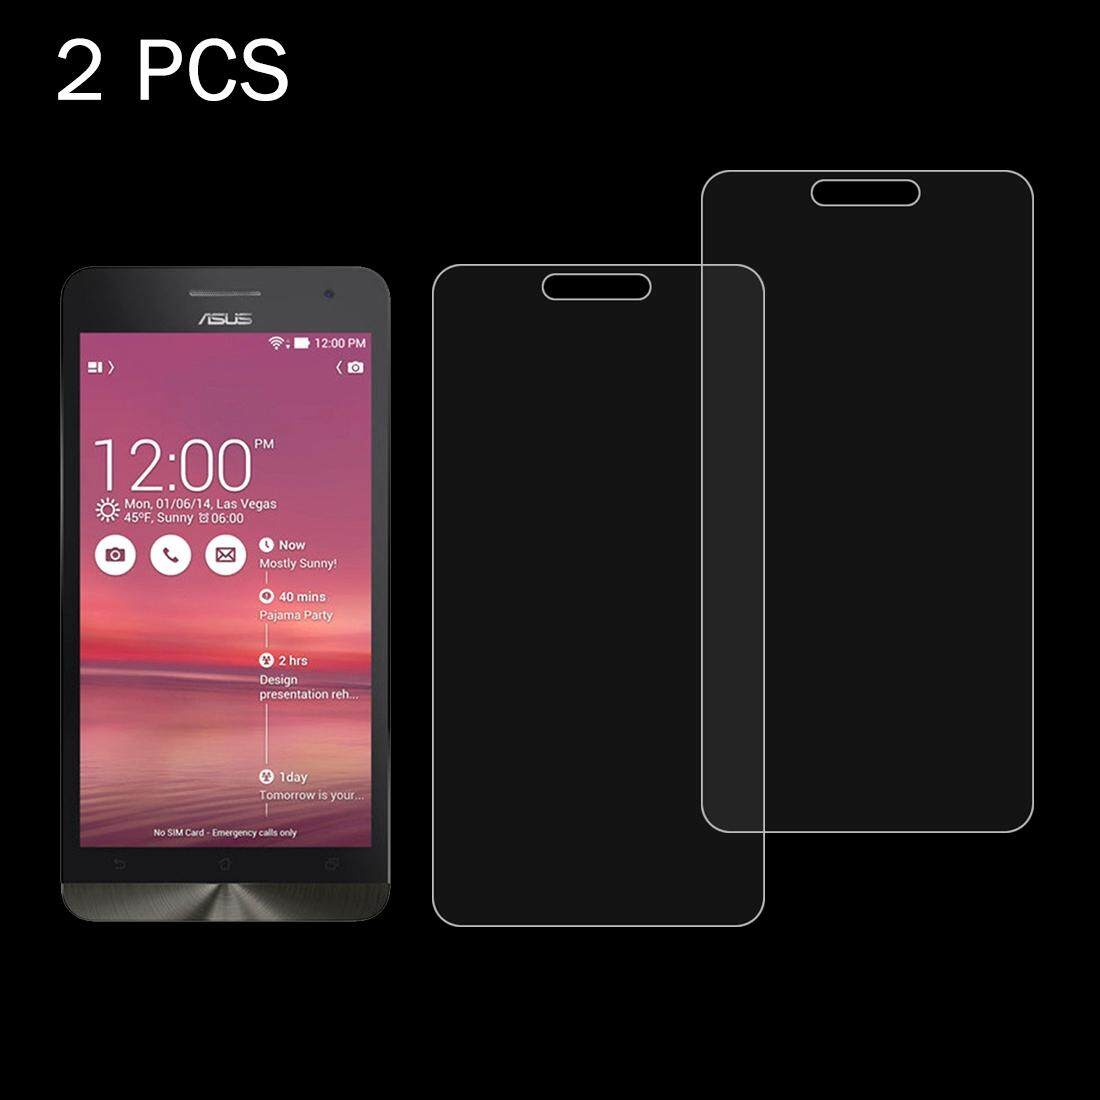 Diylooks 2 Pcs For Asus Zenfone 6 026mm 9h Surface Hardness 25d Tempered Glass Quality Samsung Galaxy N910 Note 4 Explosion